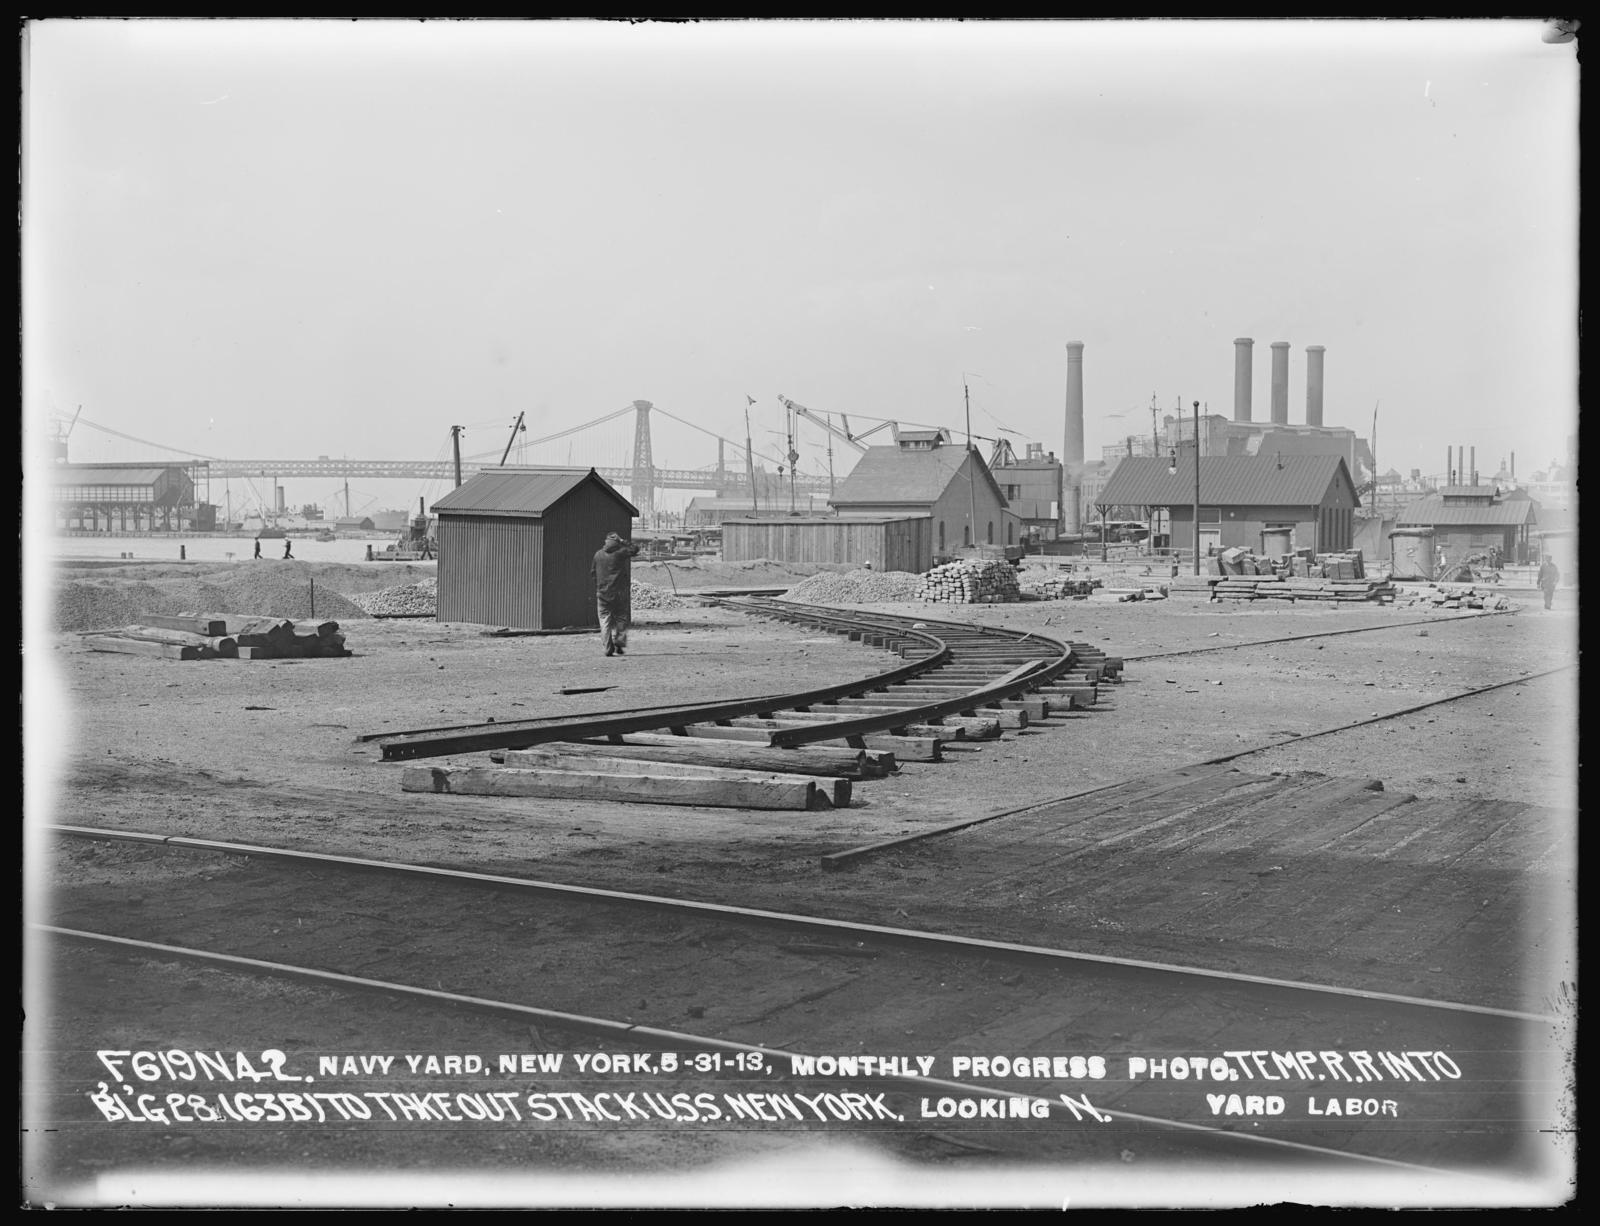 Monthly Progress Photo, Temporary Railroad into Building 28 (63-B) to Take Out Stack USS New York, Looking North, Yard Labor